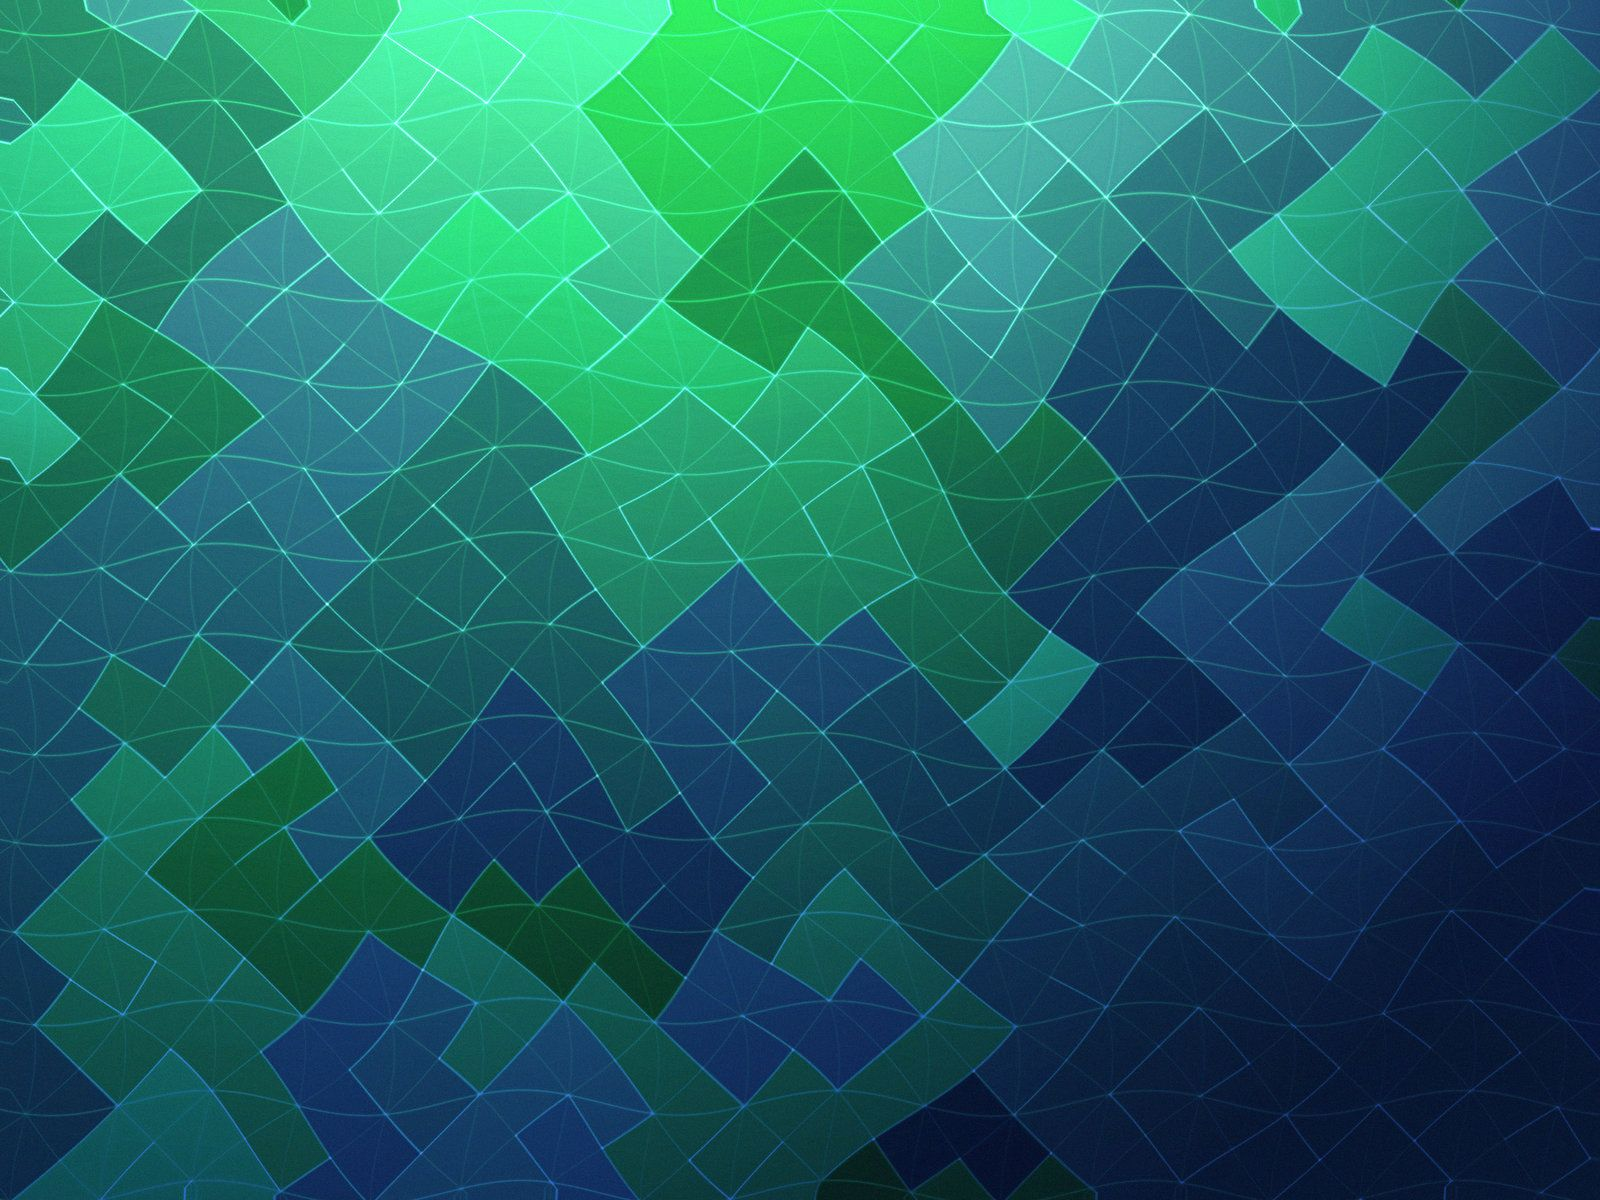 Nexus Free Wallpaper Nexus HD Wallpapers For Free